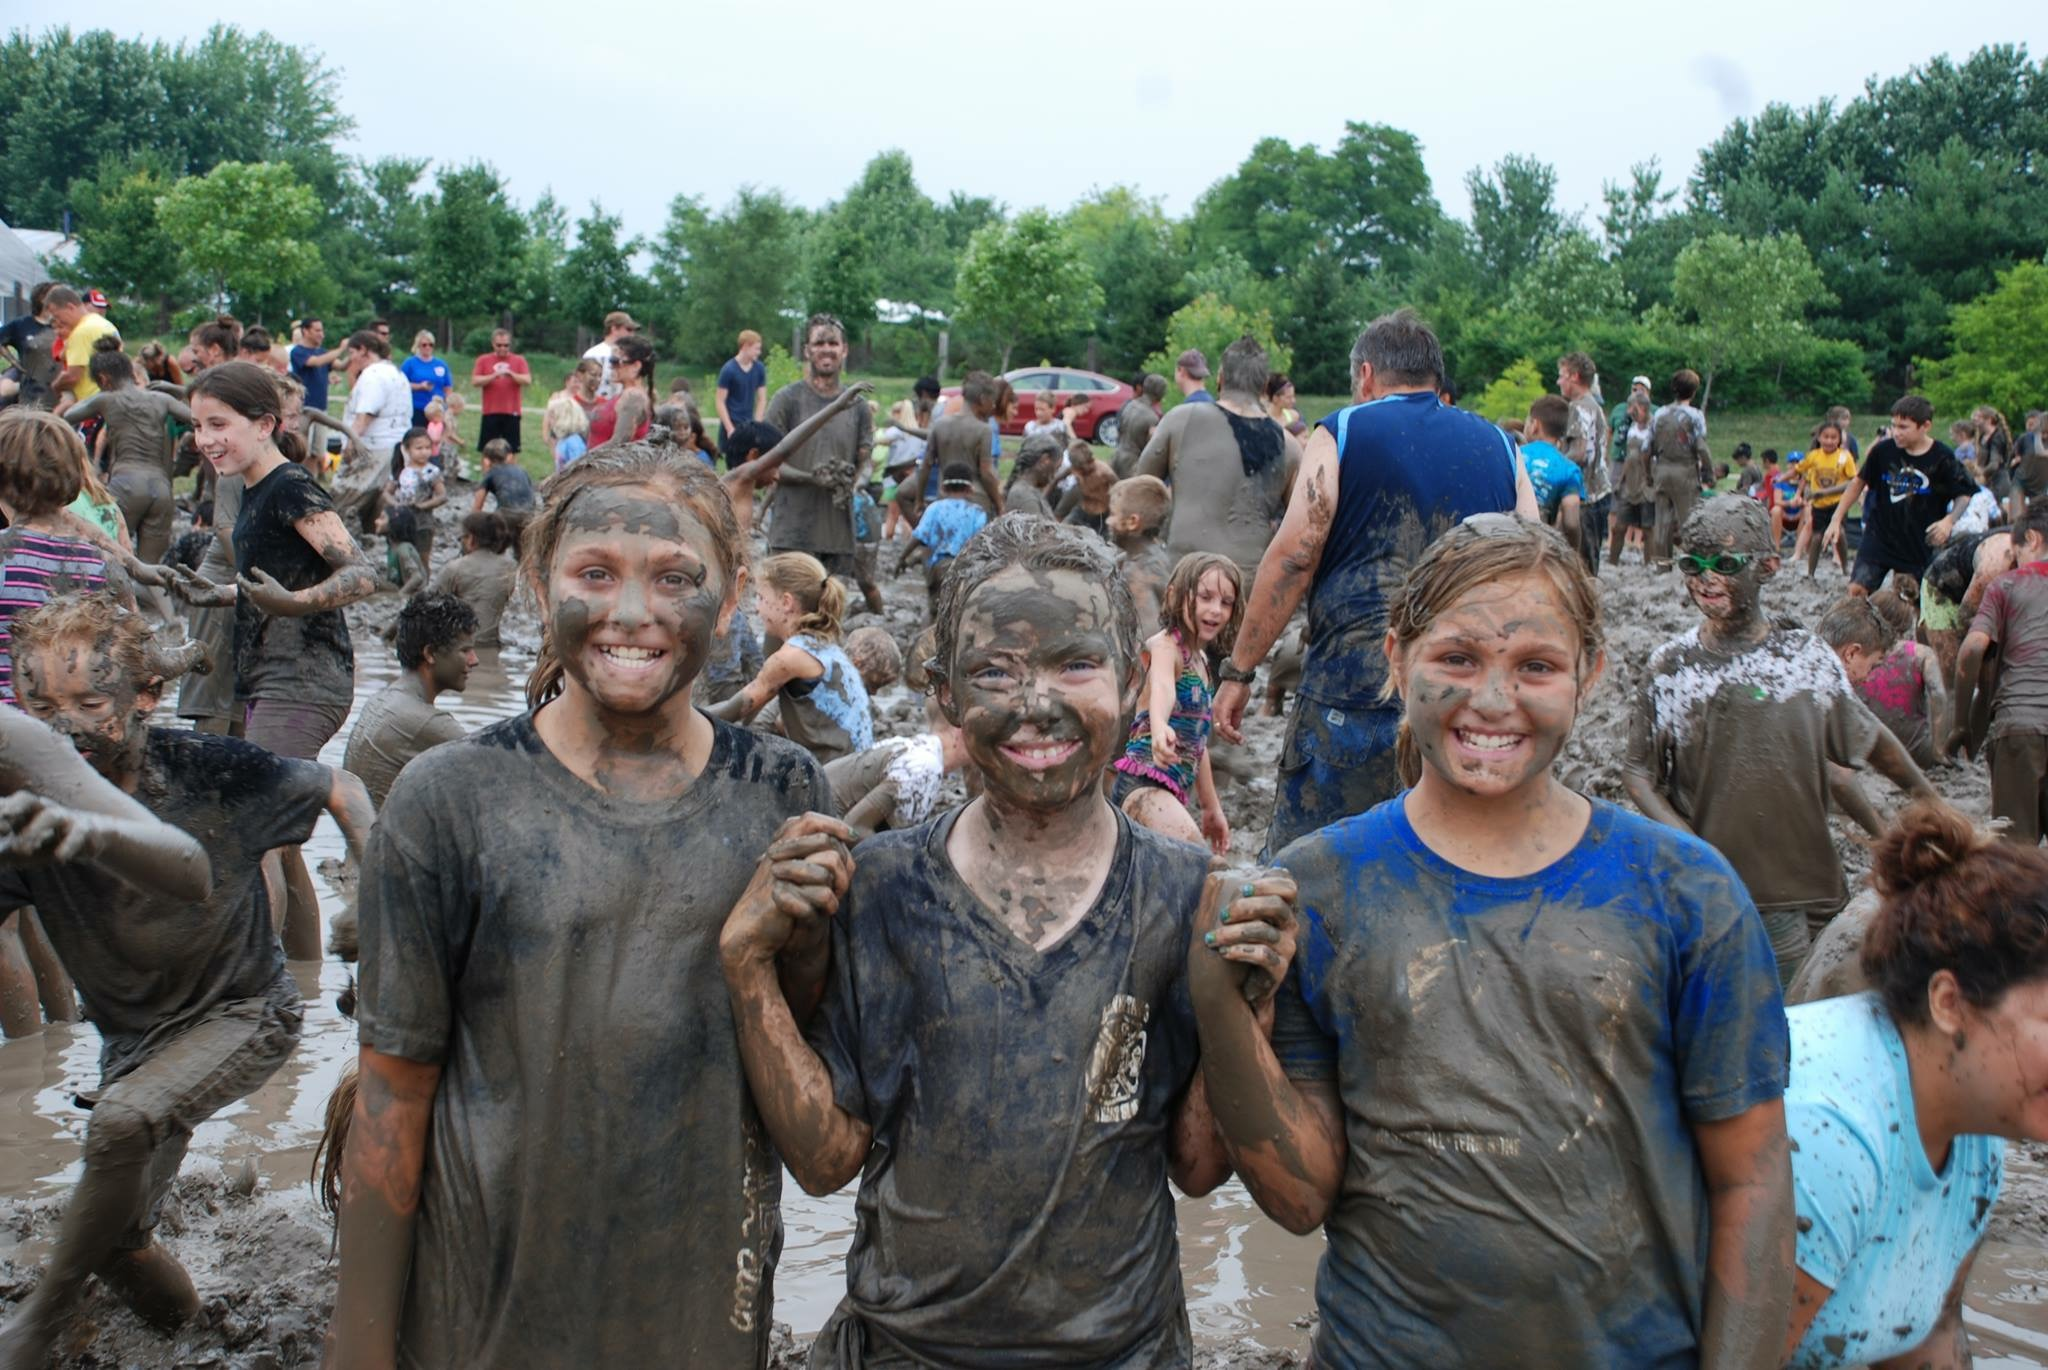 Youths covered in mud